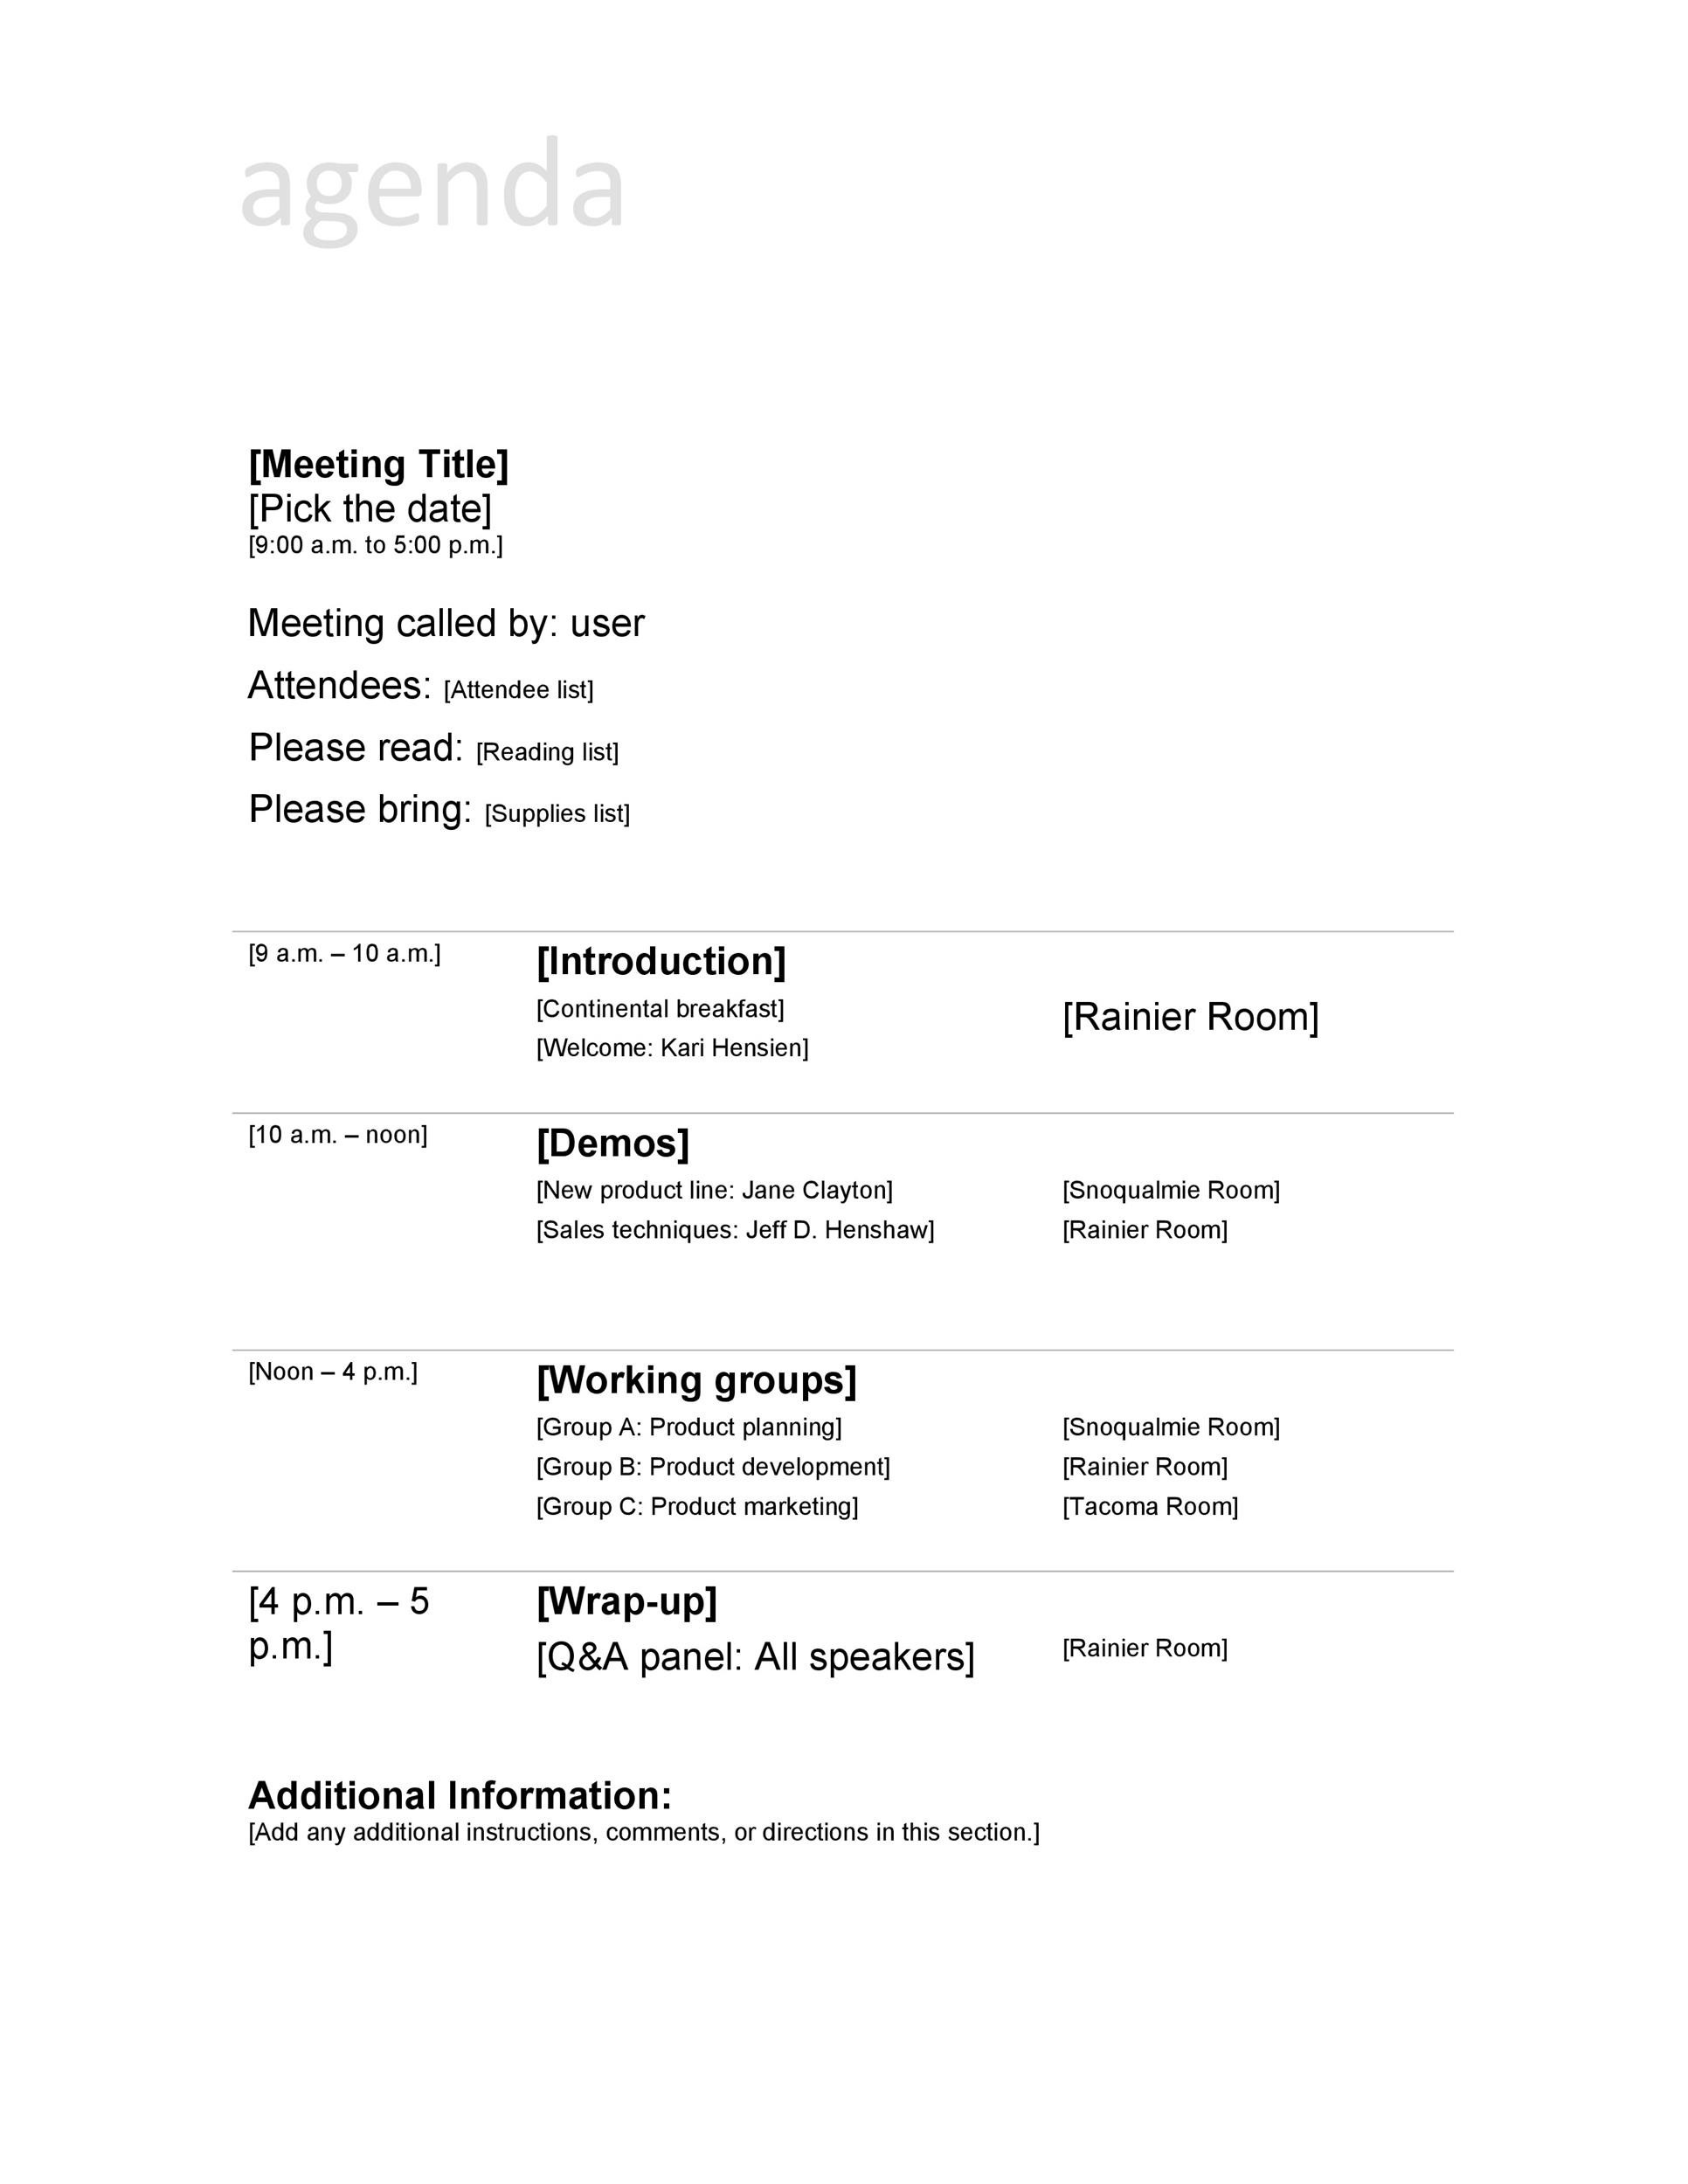 Agenda Template Effective Meeting Agenda Templates Template Lab